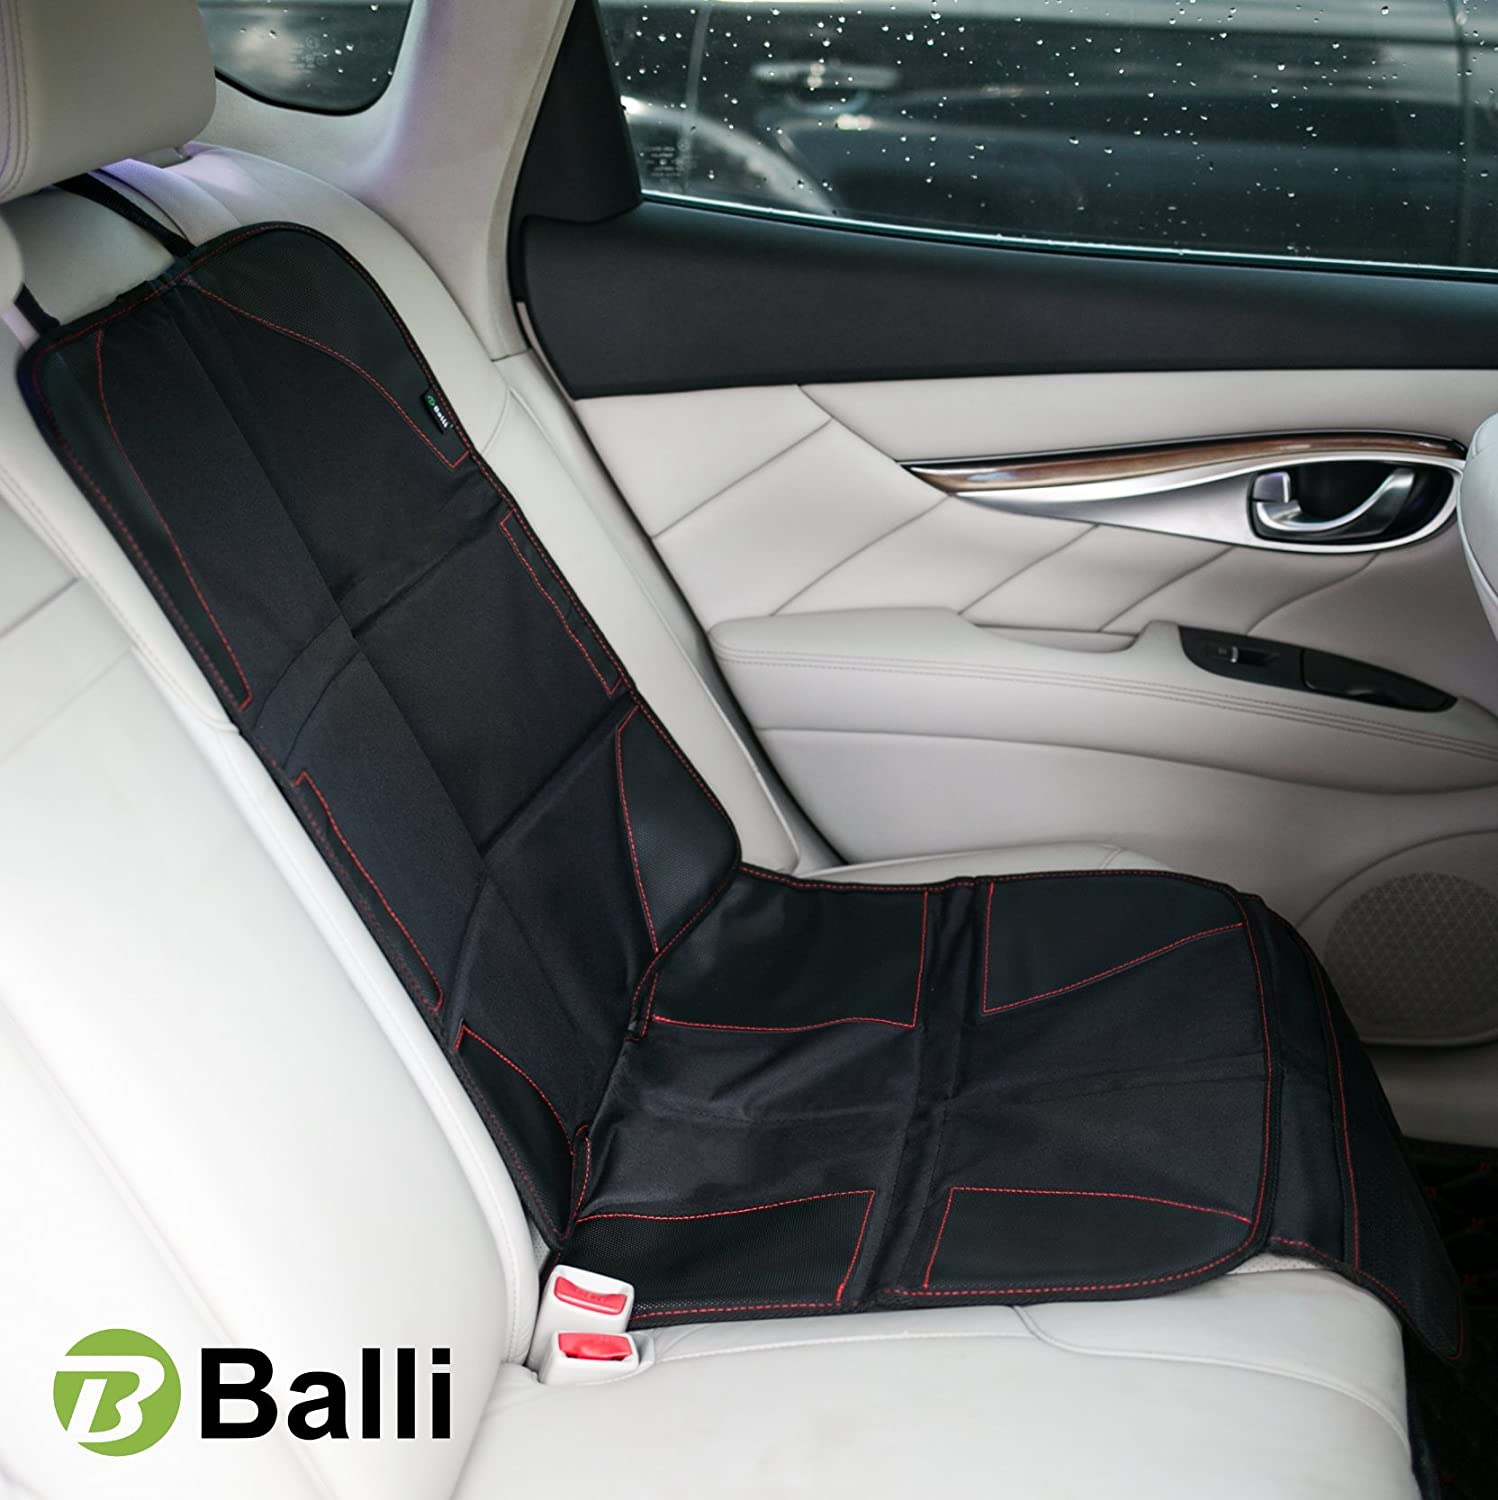 Baby Car Seat Protector with Thickest Padding - Premium Carseat Seat Protectors - Carseat Auto Cover - Seat Protector Under Car Seat - Car Seat Guardian - Leather Car Seat Mat - Booster Seat Protector Balli Product